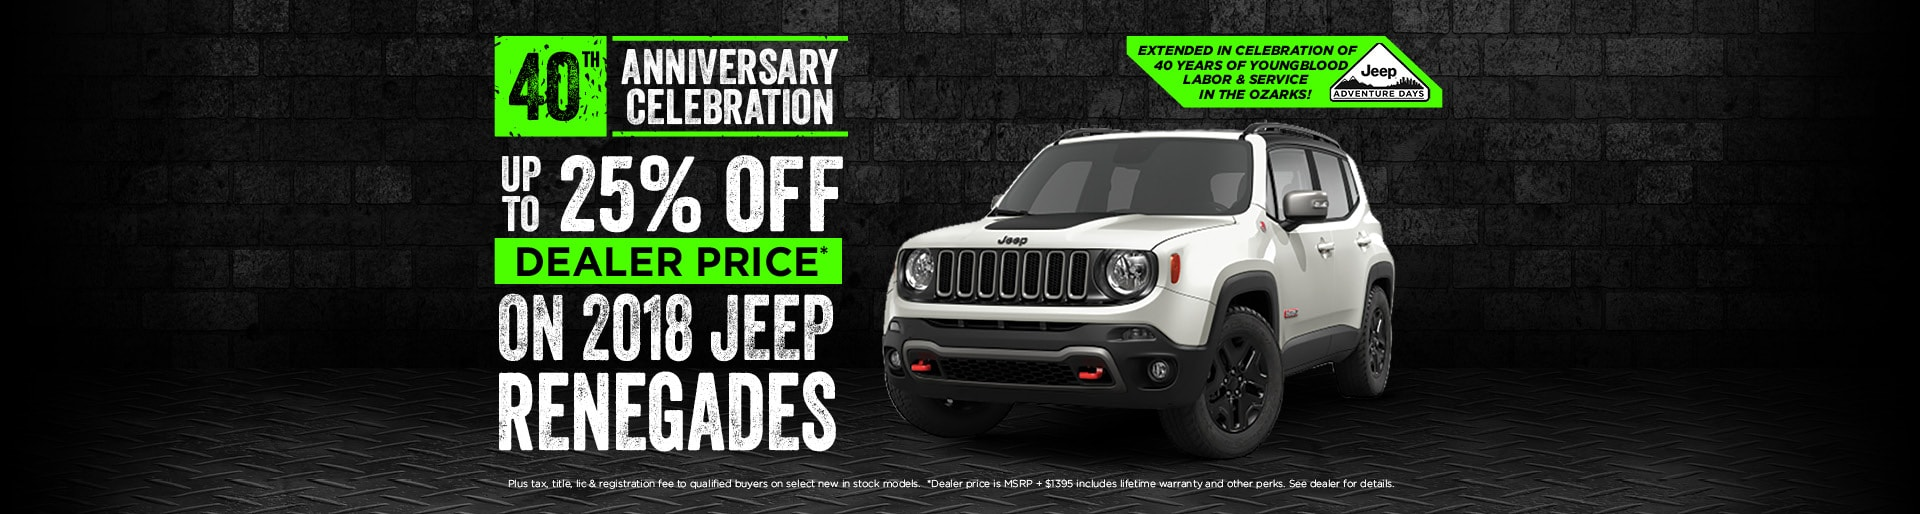 25% off Jeep Renegades